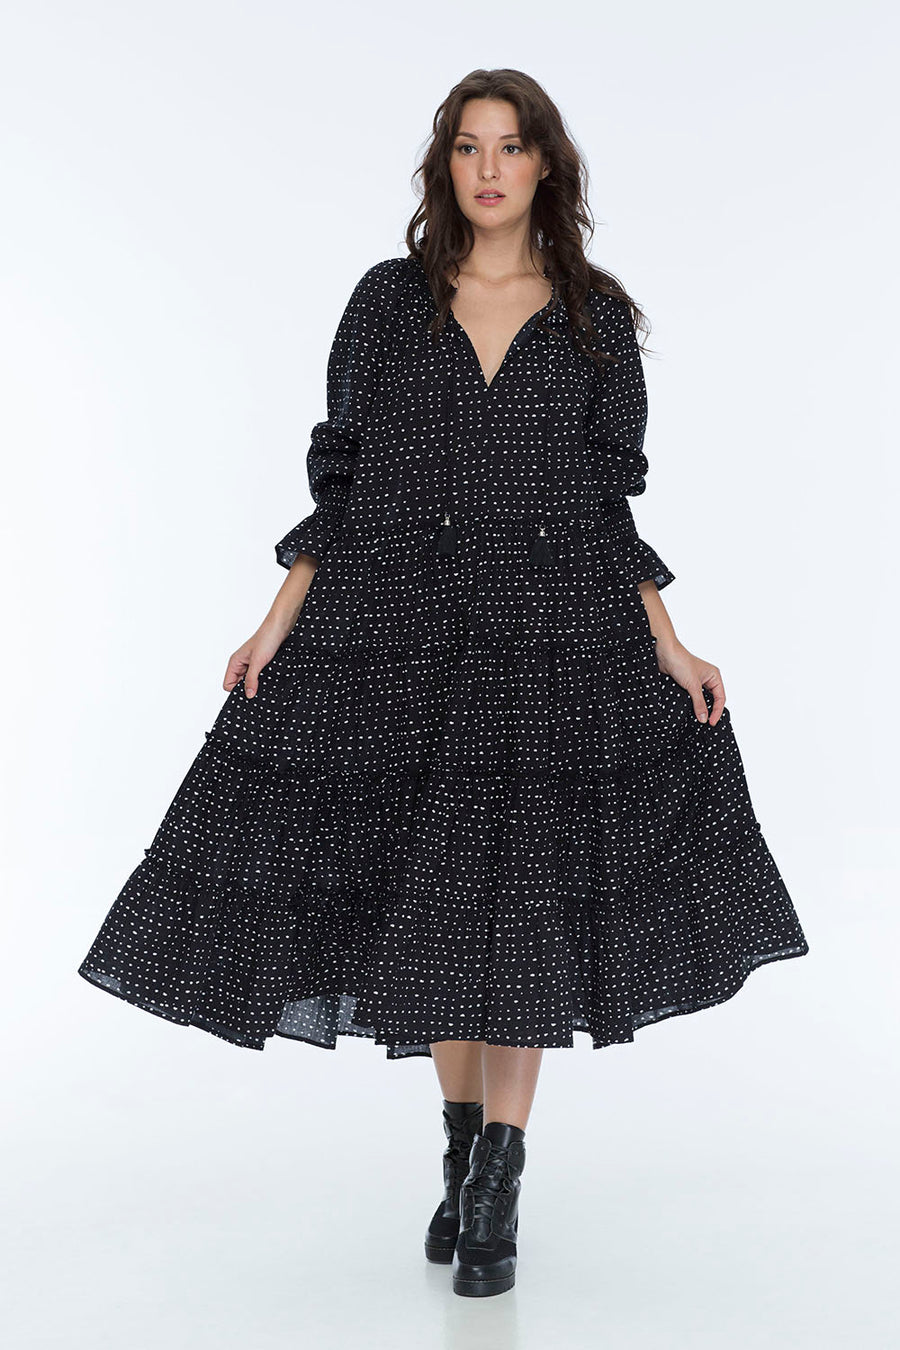 COCO CABANA DRESS RANDOM DOT NOIR